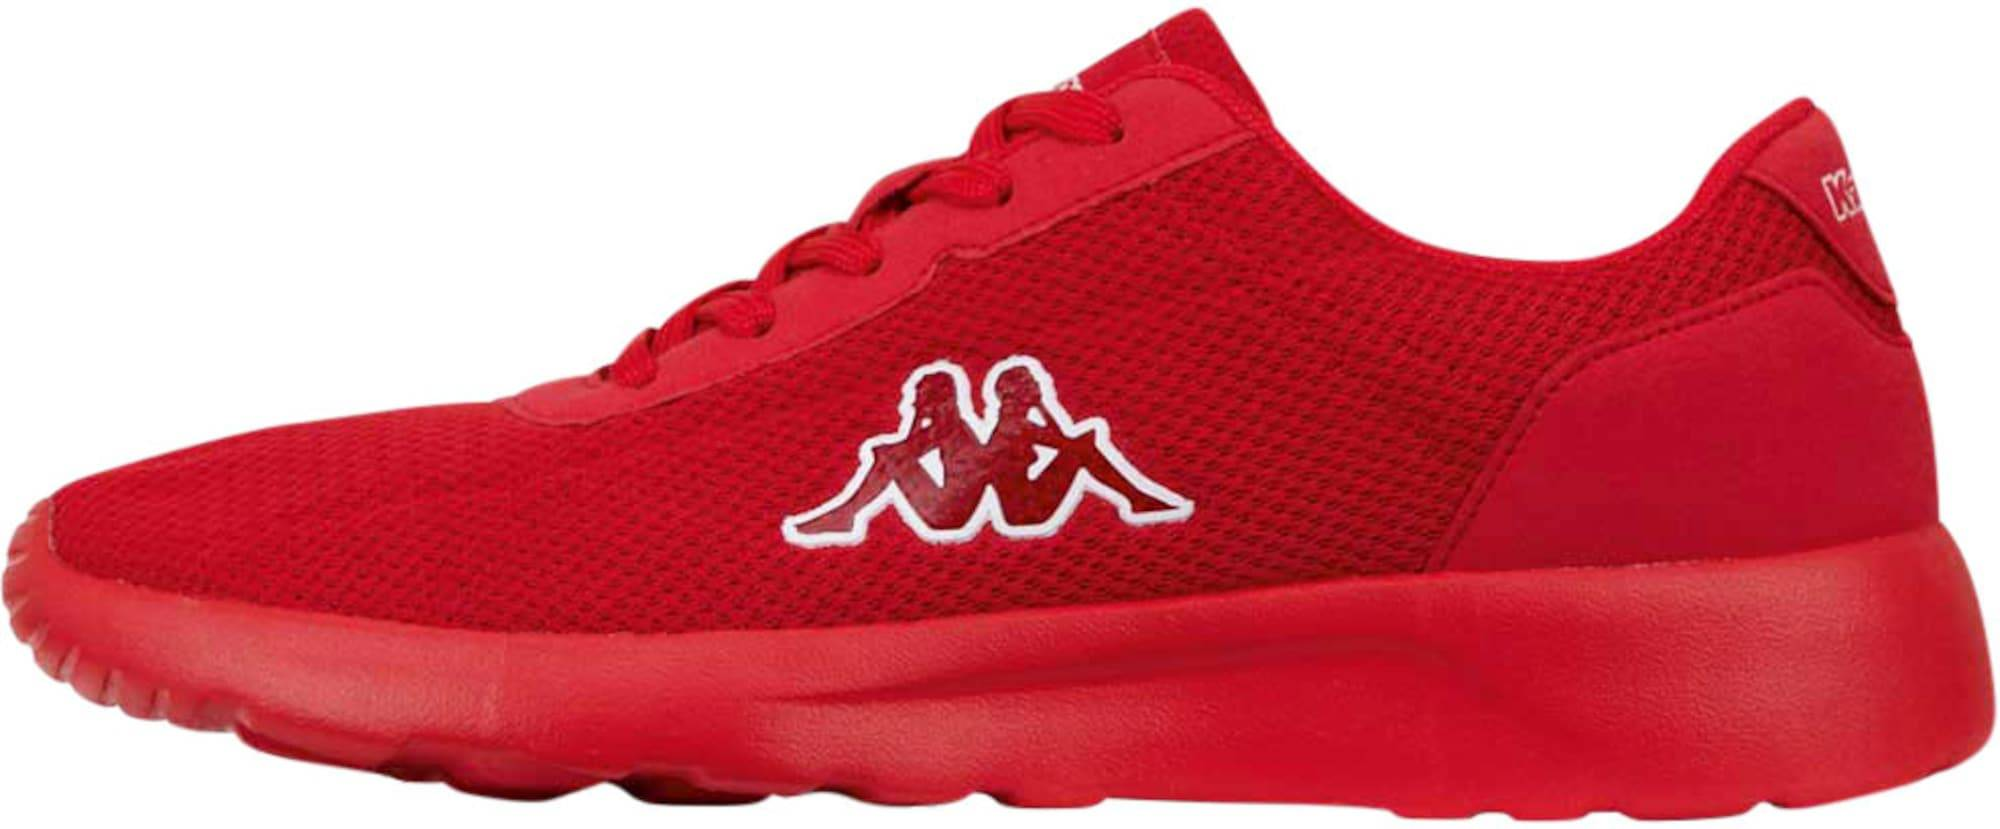 KAPPA Chaussure de course  - Rouge - Taille: 40 - male